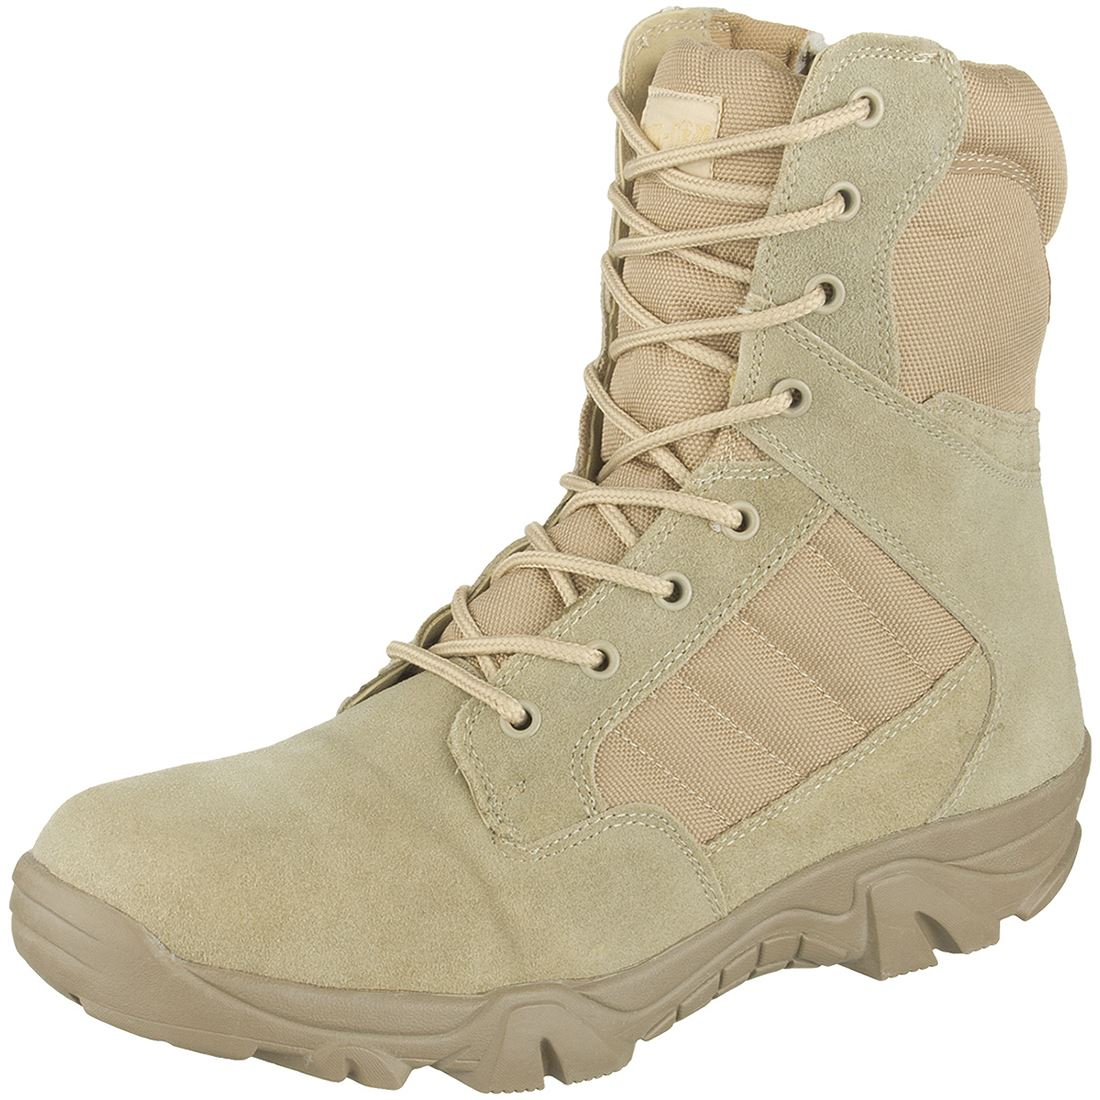 MIL-COM HIKING RECON SIDE ZIP Stiefel AIRSOFT SECURITY MILITARY HIKING MIL-COM WORK TACTICAL 6bbe14